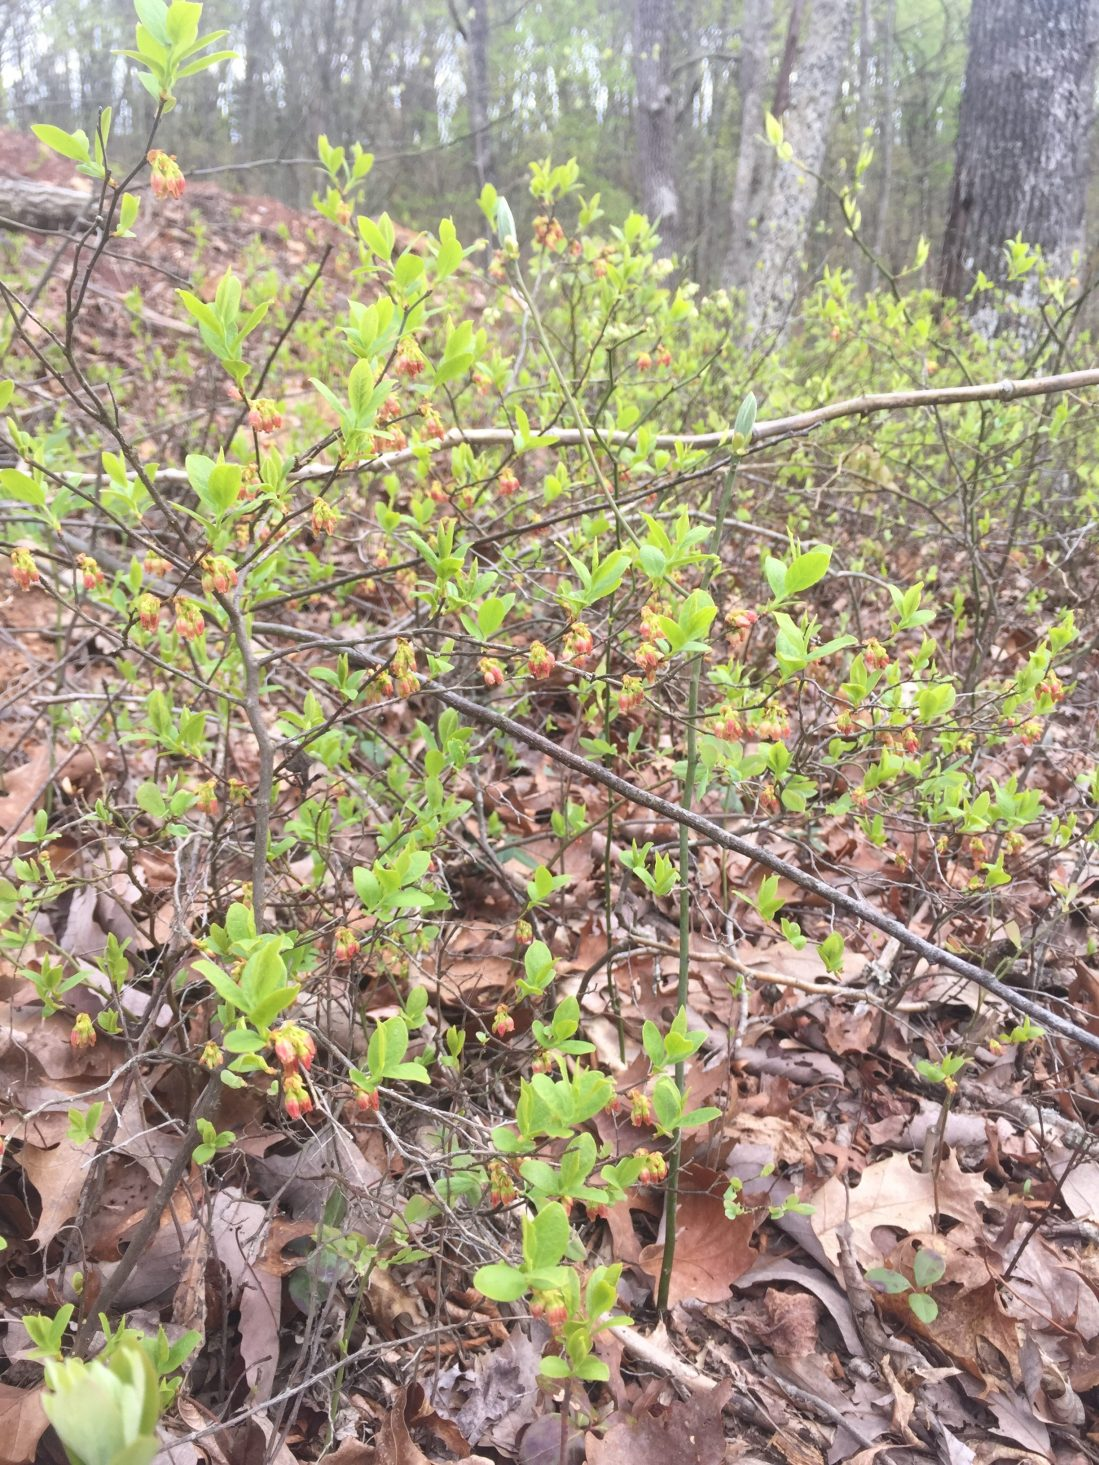 Huckleberry or wild blueberry blossoms